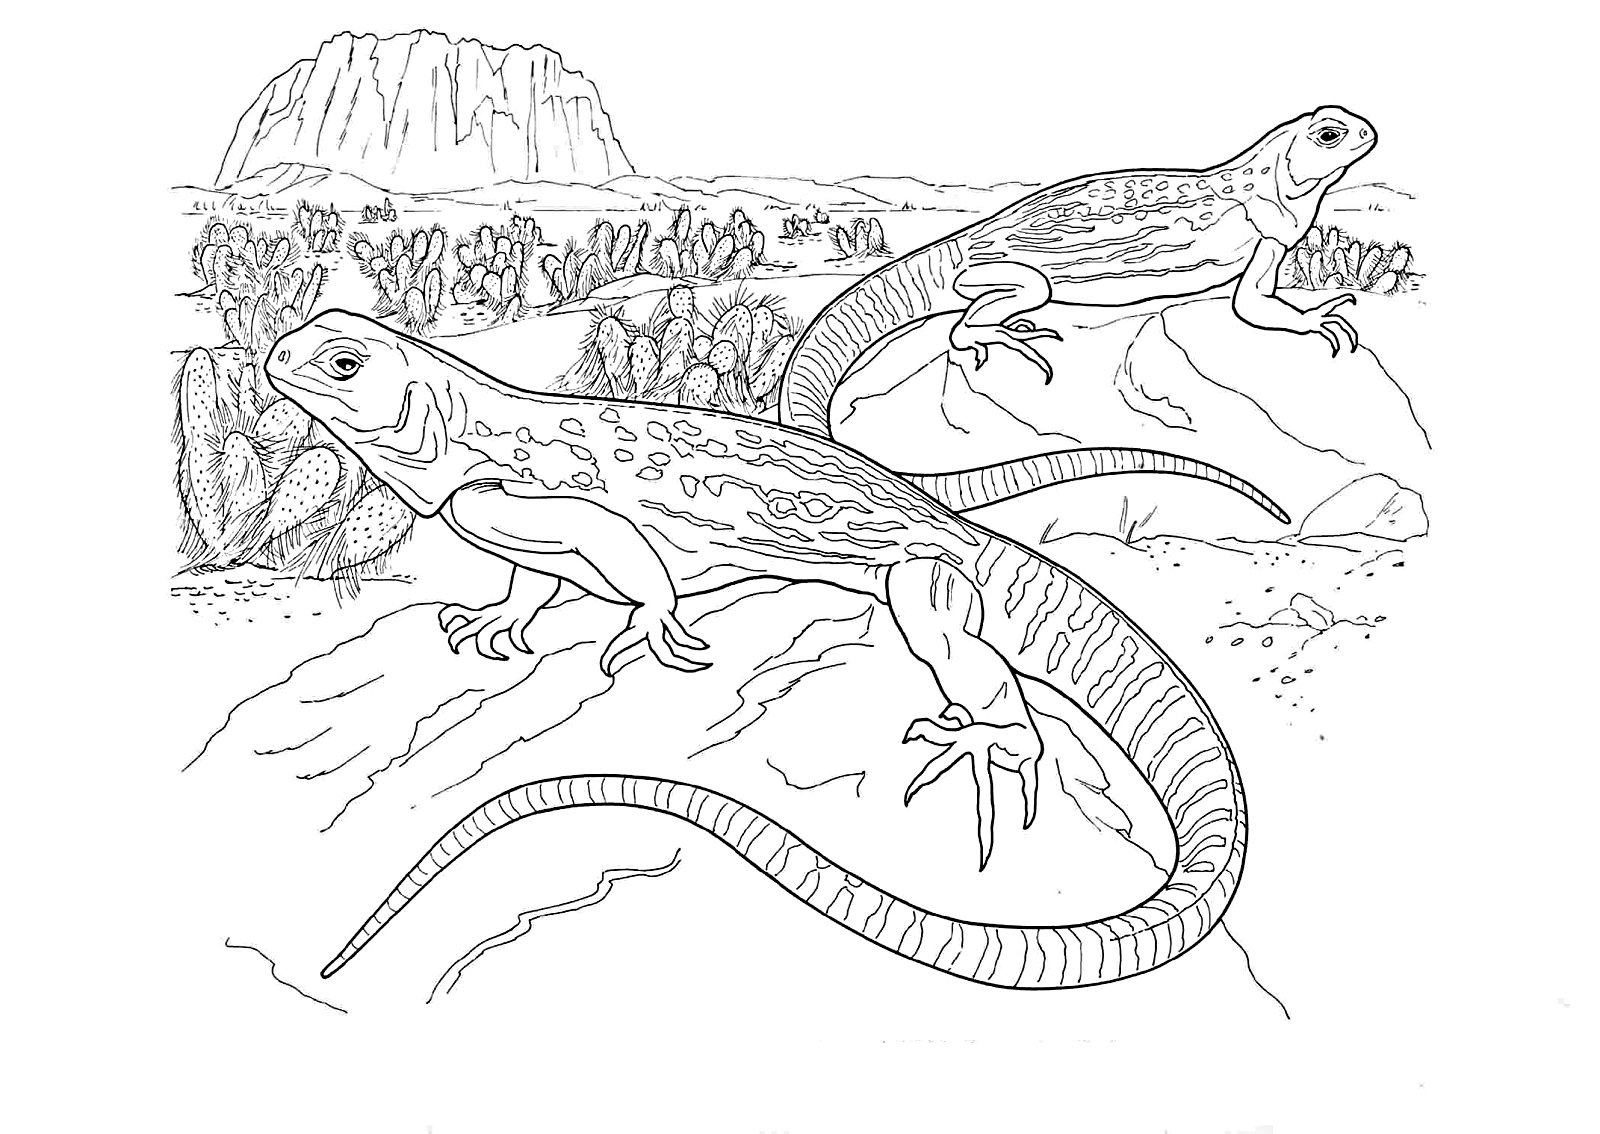 Iguana coloring pages to download